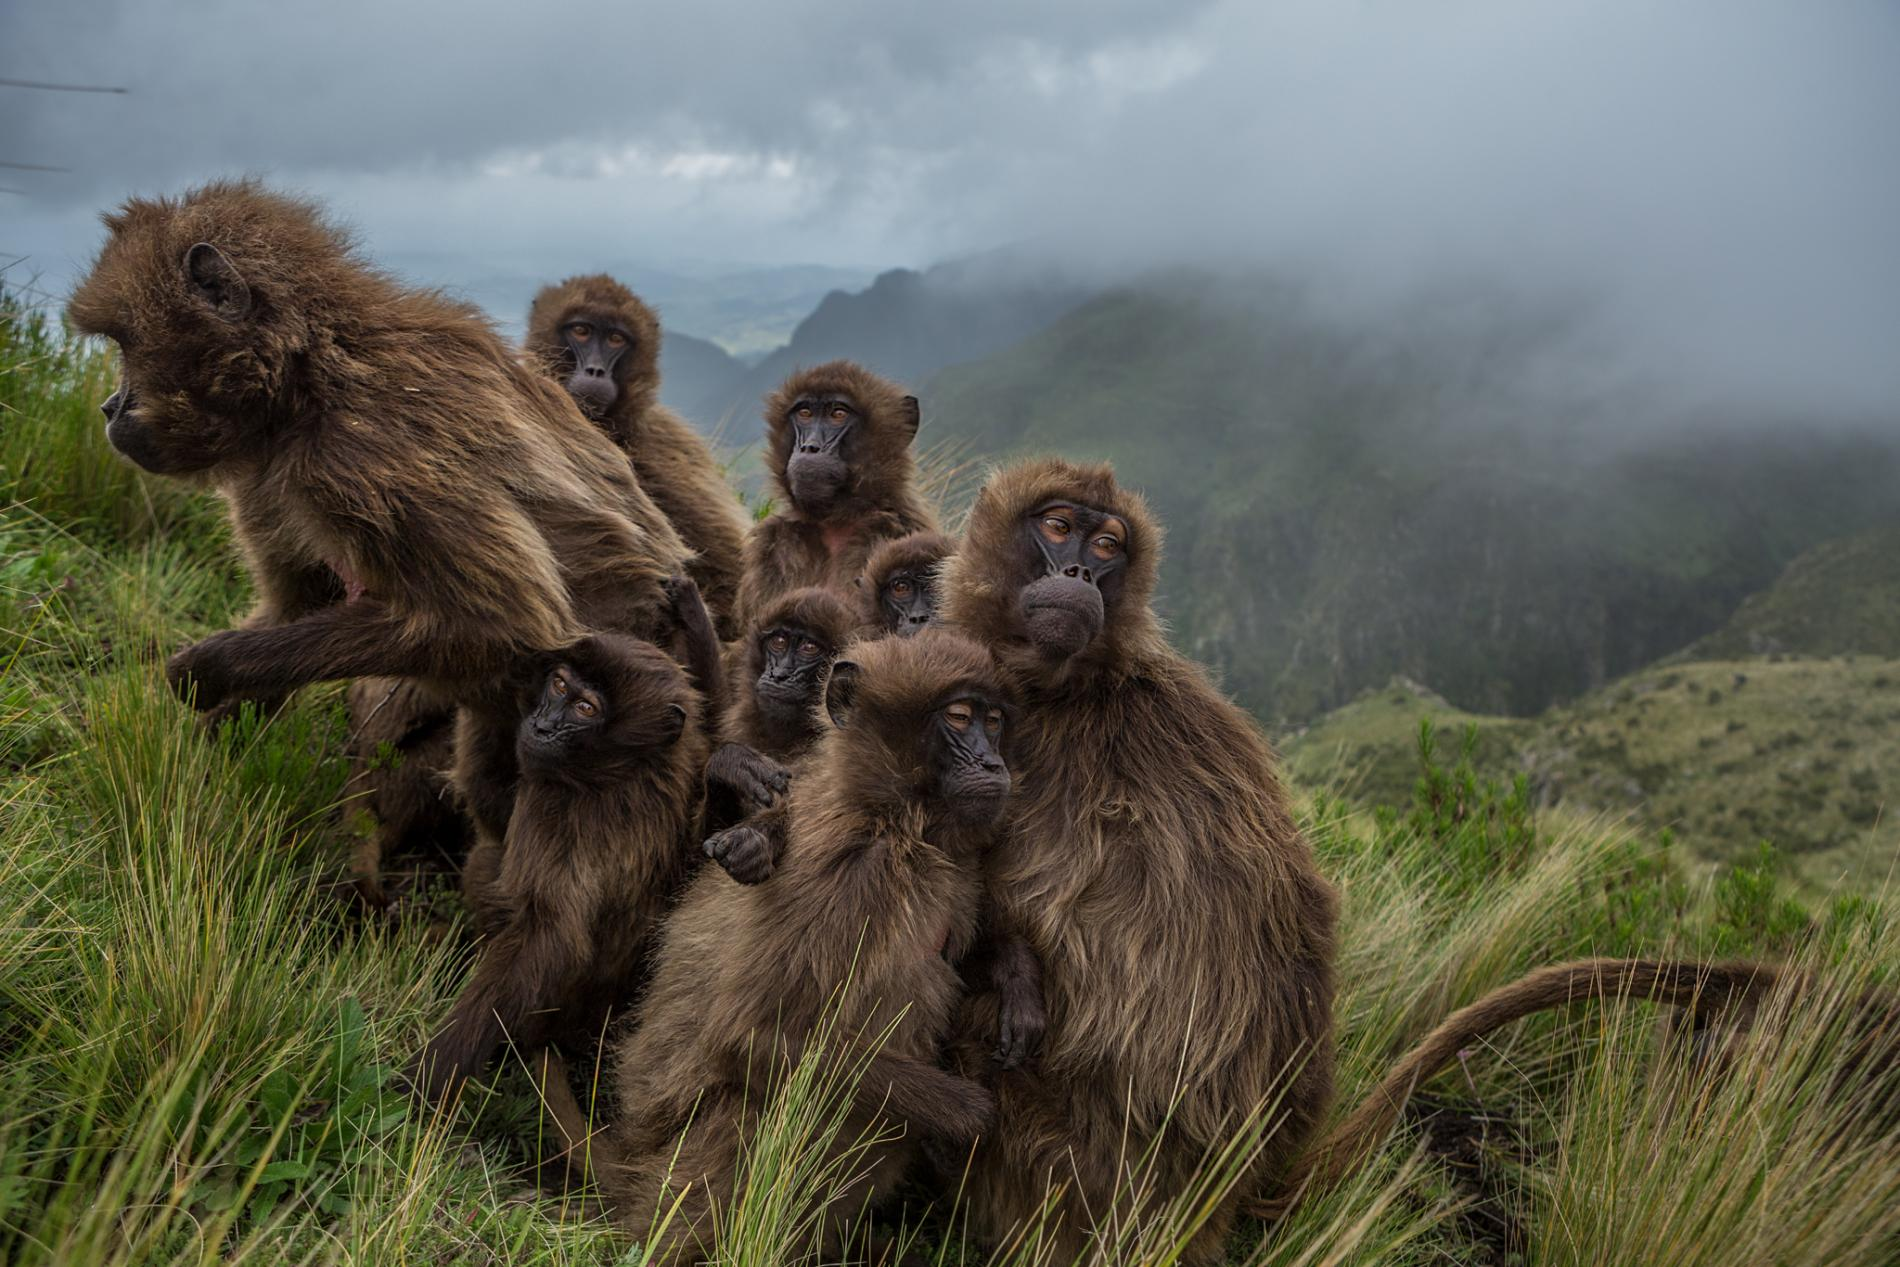 57 Pictures of the year - Natgeo - Tinhte.vn 16.jpg